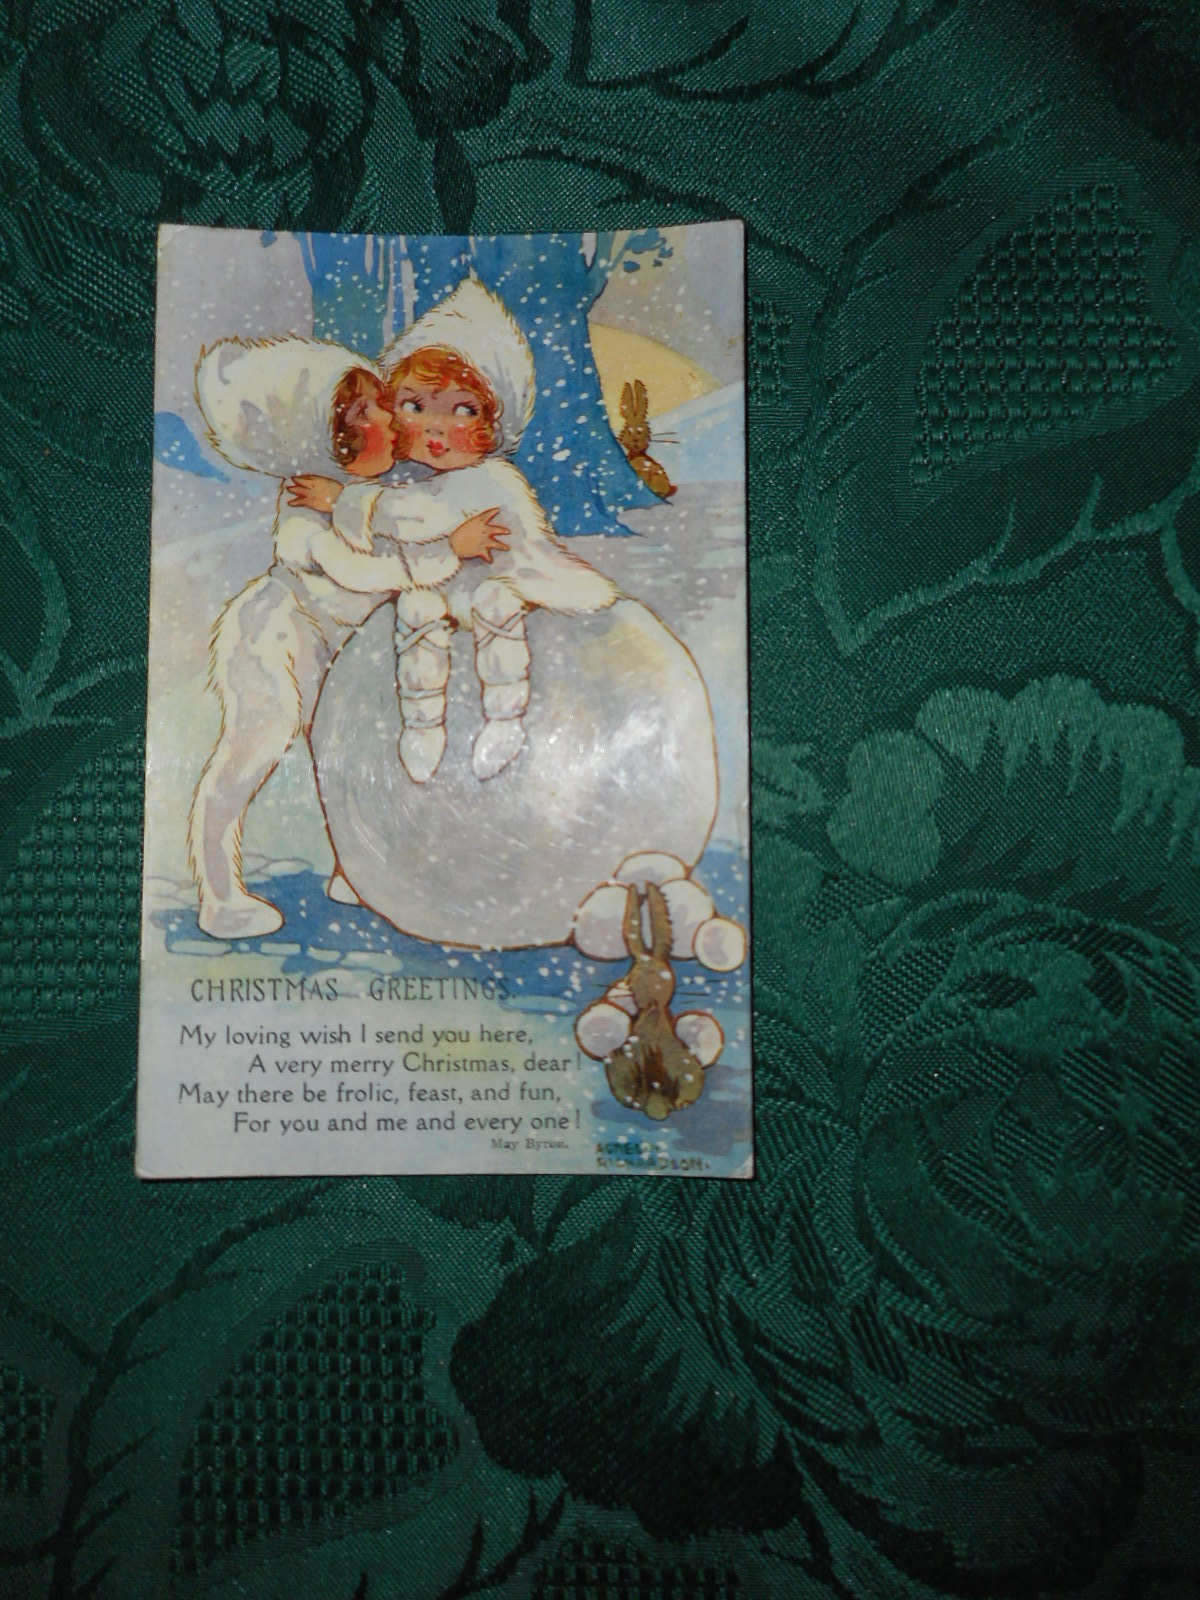 AGNES RICHARDSON Illustrated Postcard (W & K Postcard Copyright Series No. 5084)  Christmas Greetings